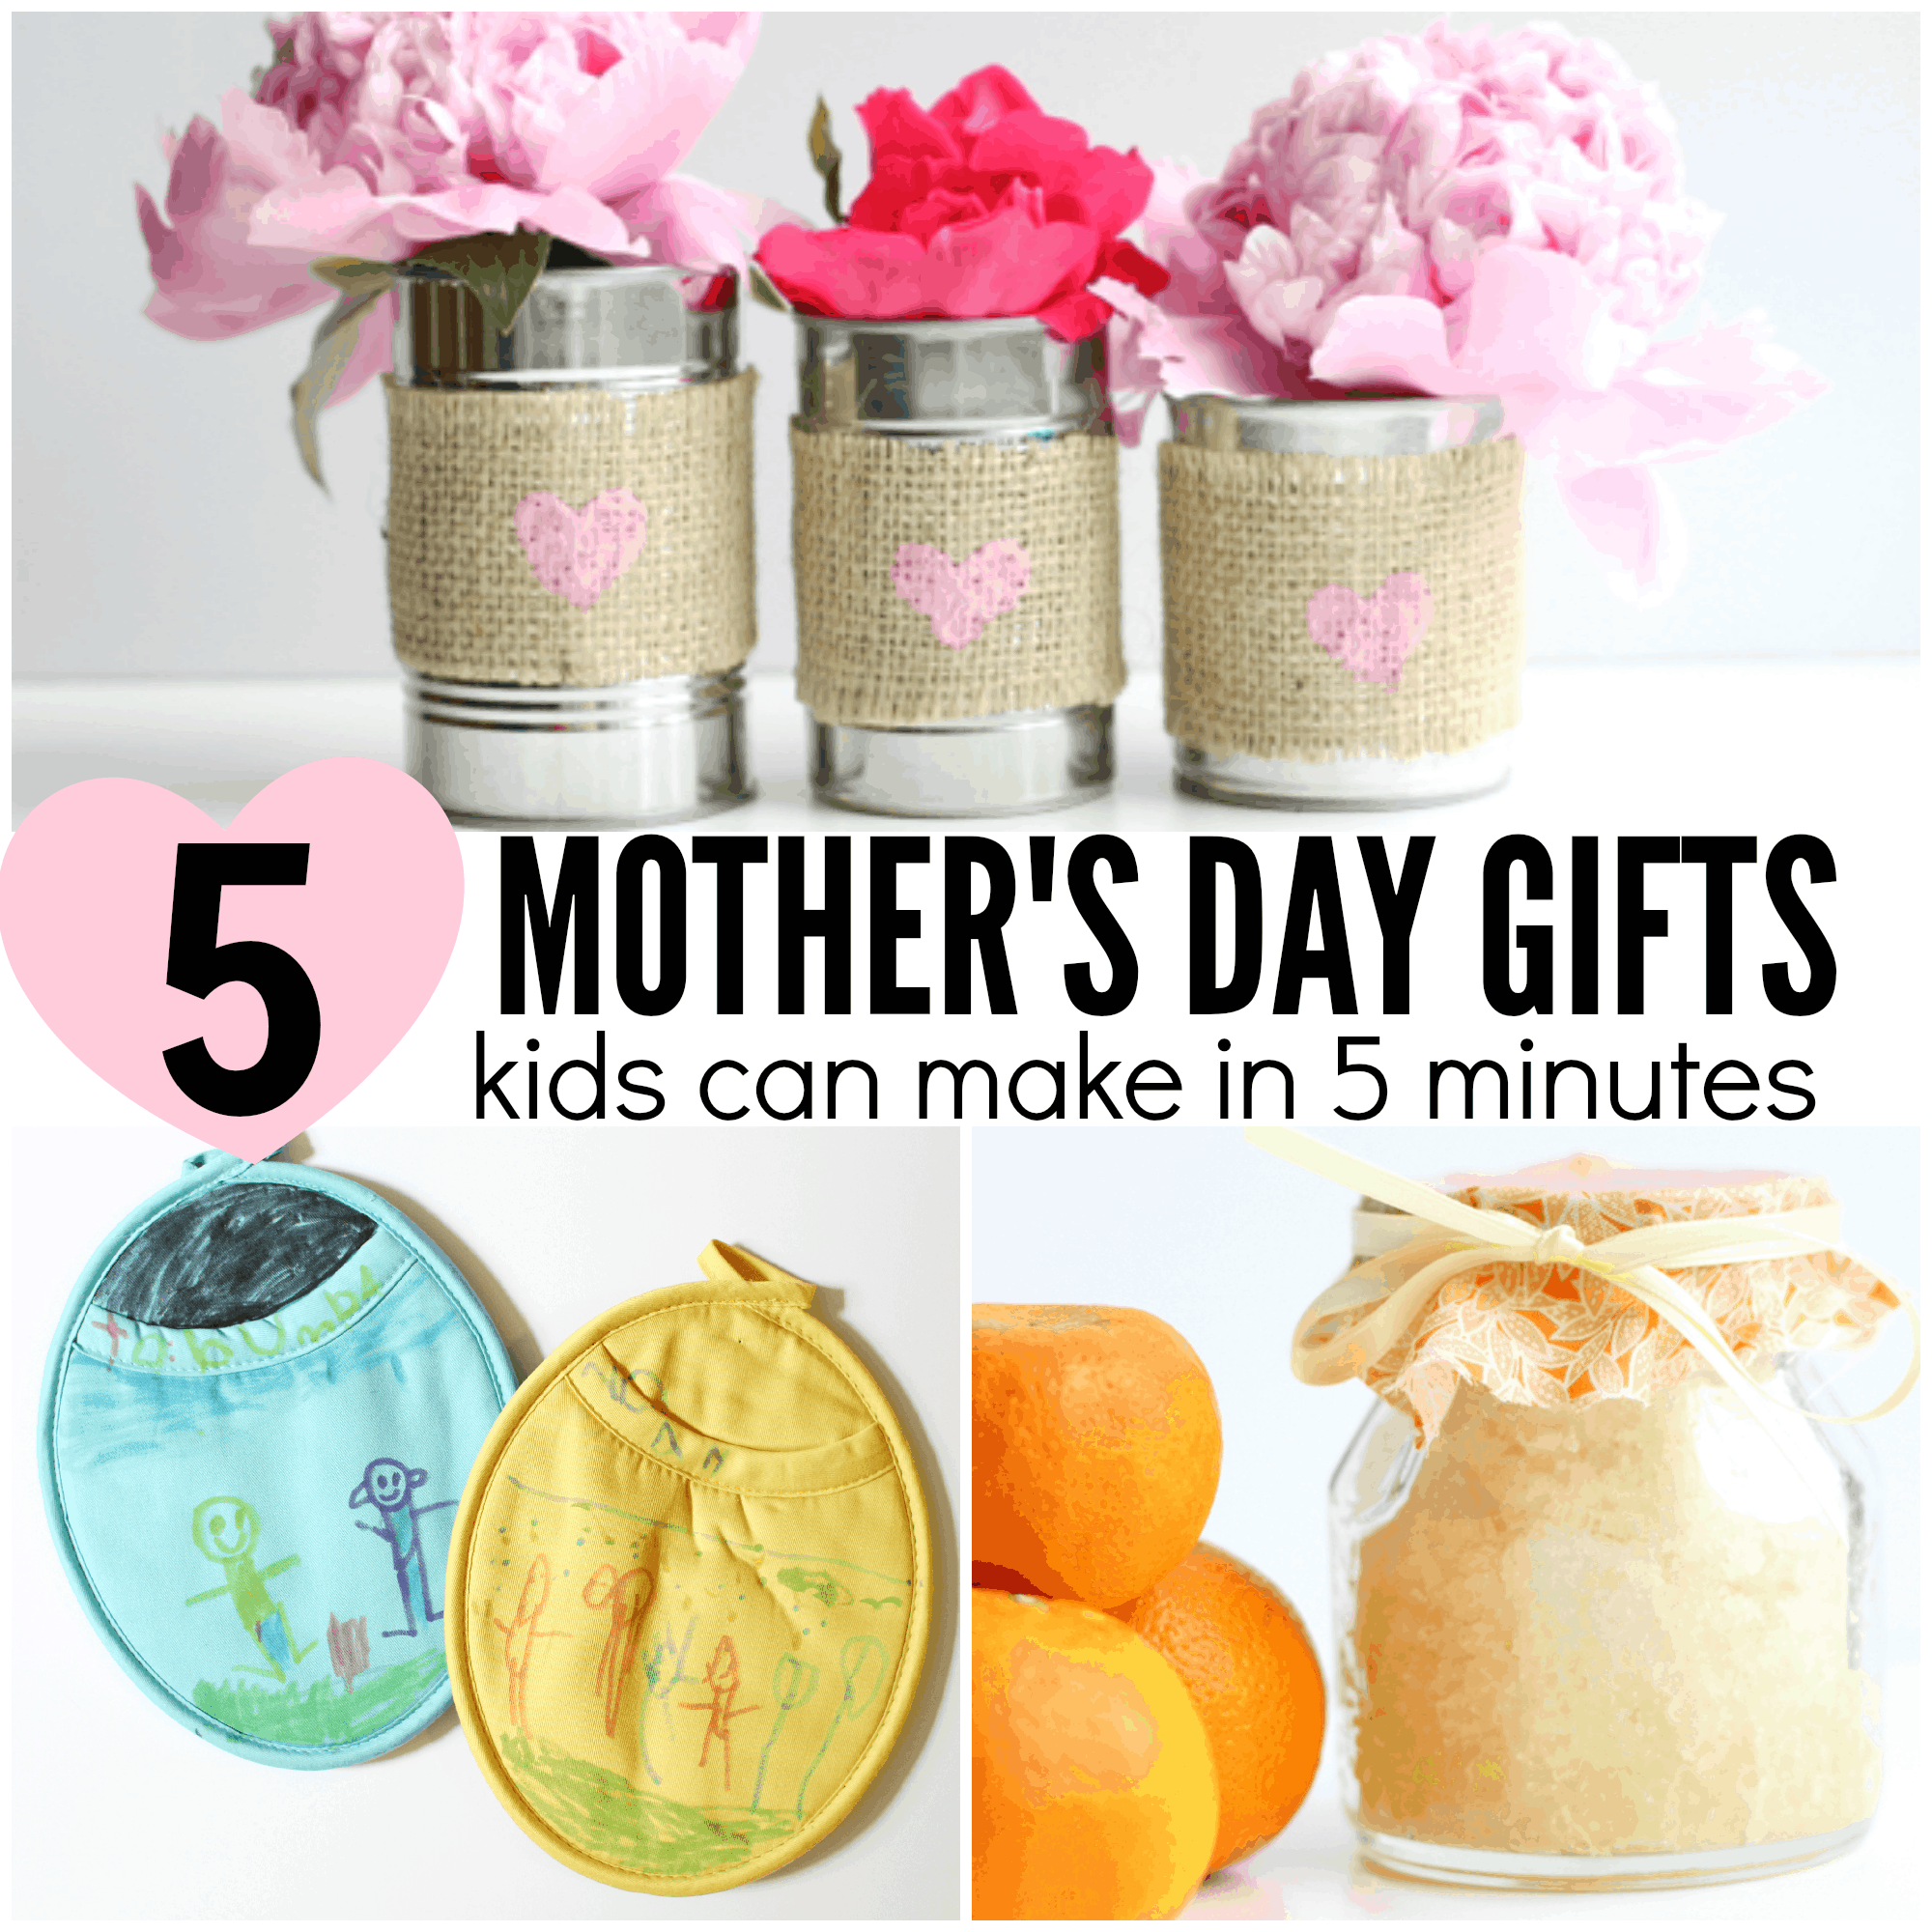 5 Mother's Day Gifts Preschoolers Can Make - I Can Teach ...